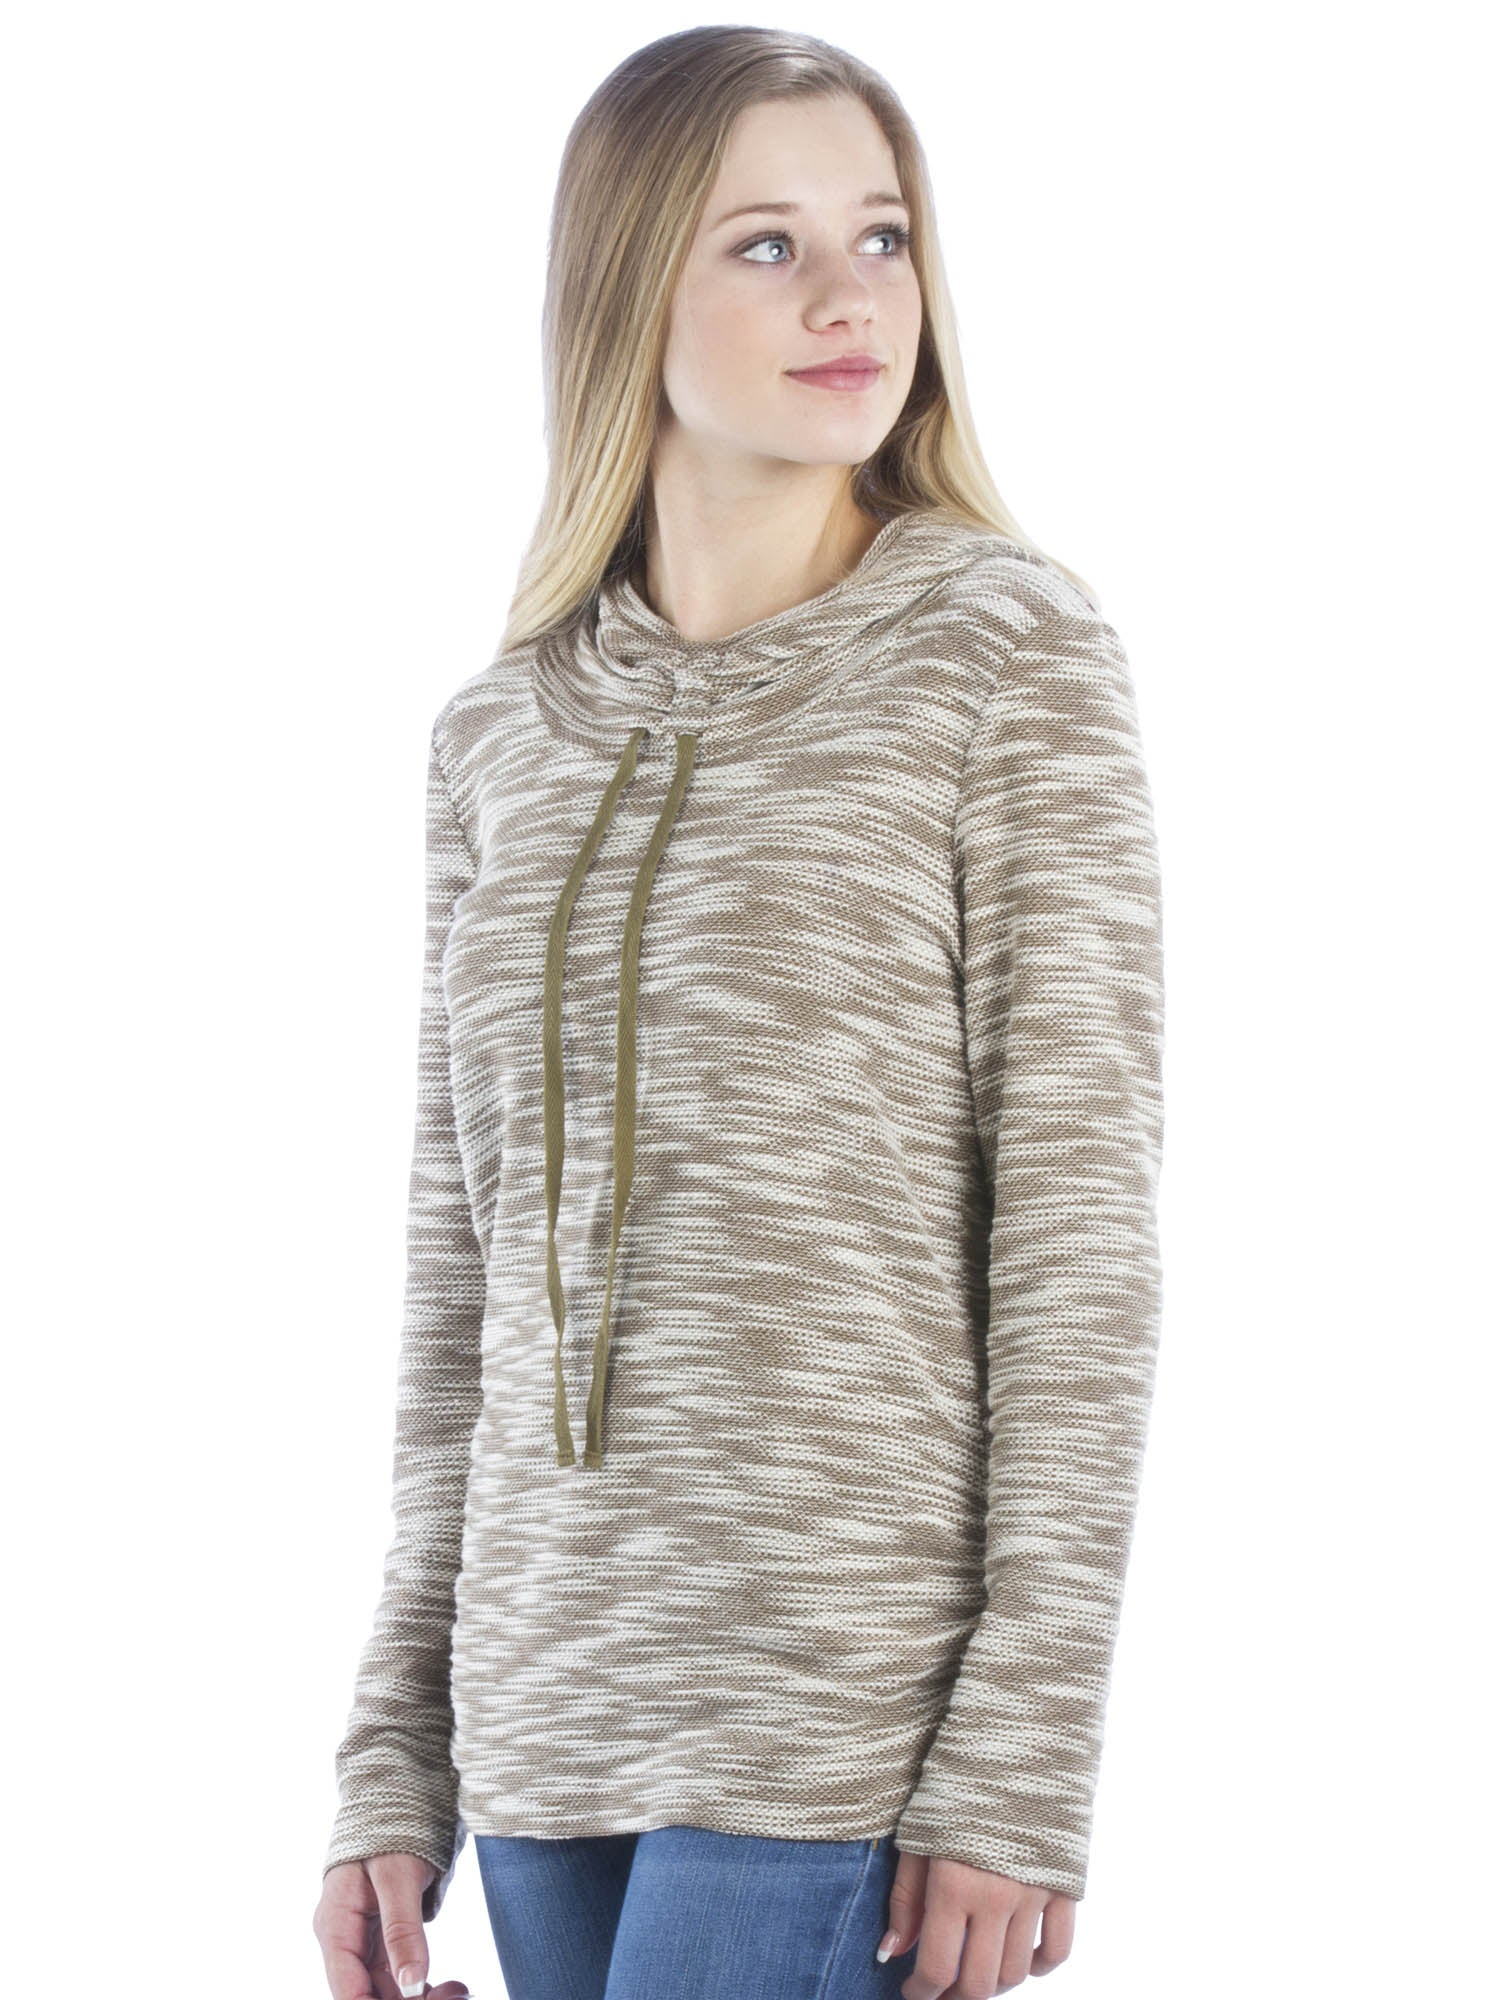 Heather Cowl Neck Athleisure Hoodie With Drawstrings